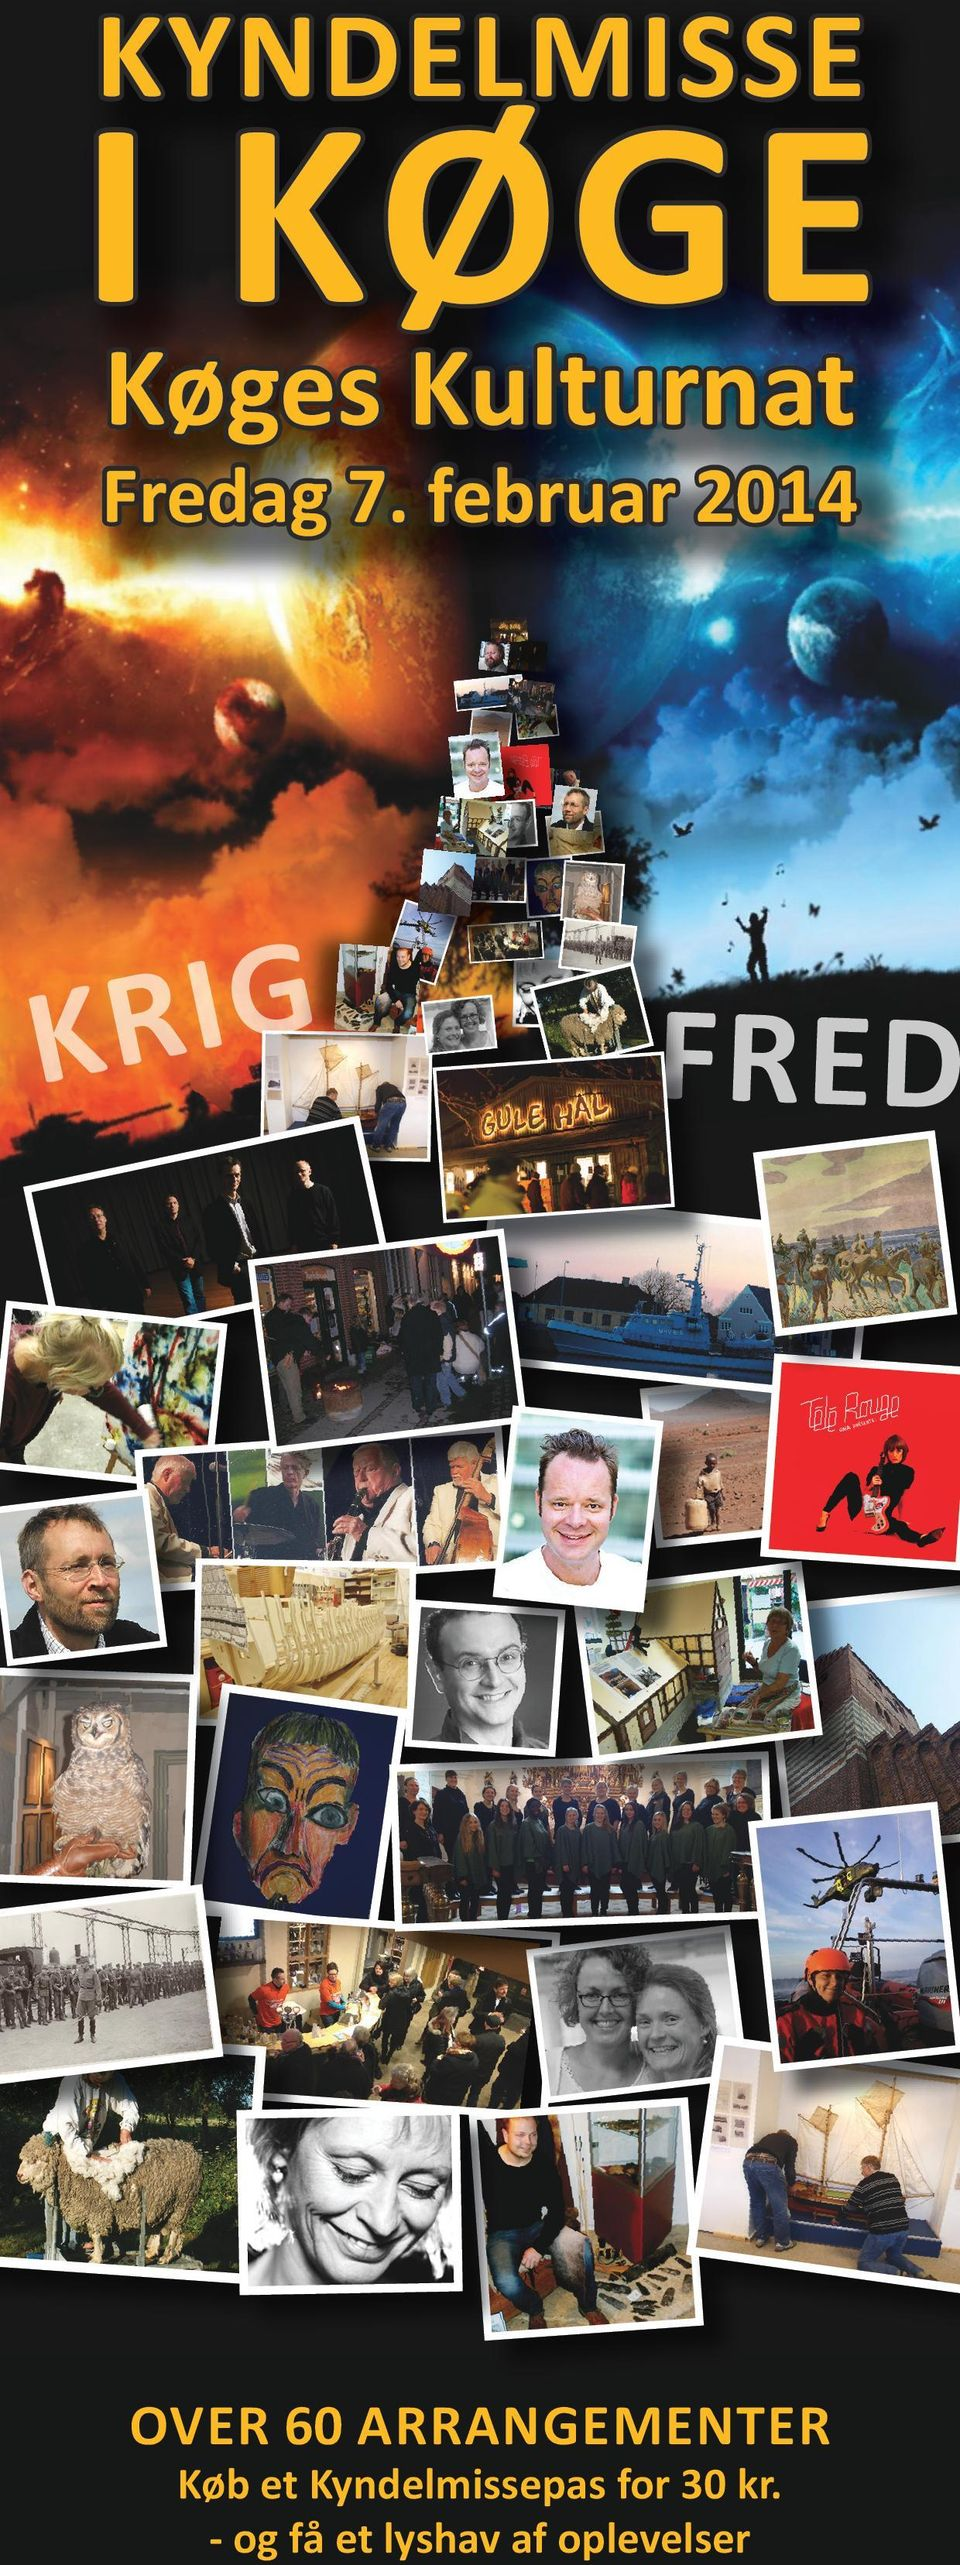 februar 2014 KRIG FRED OVER 60 ARRANGEMENTER